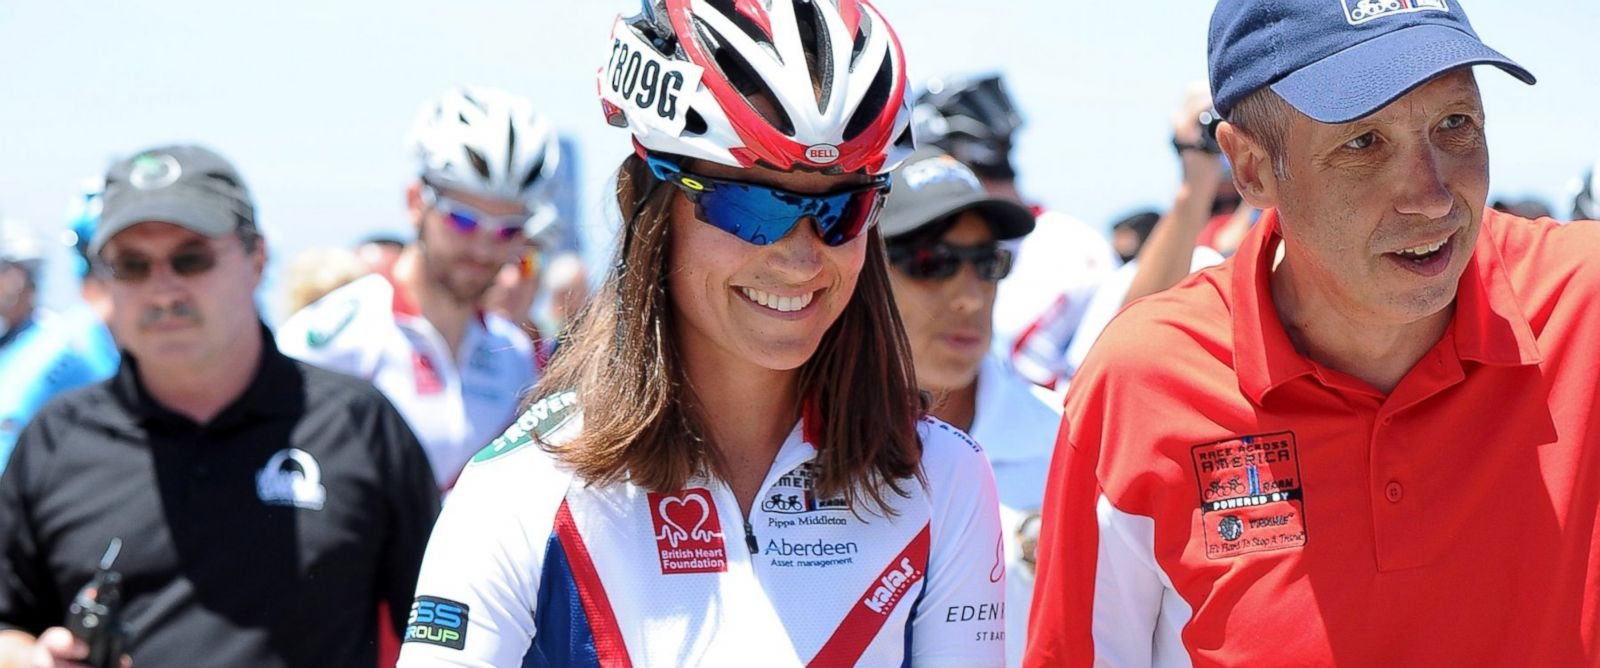 PHOTO: Pippa Middleton is seen at the Race Across America event on June 14, 2014 in San Diego, Calif.